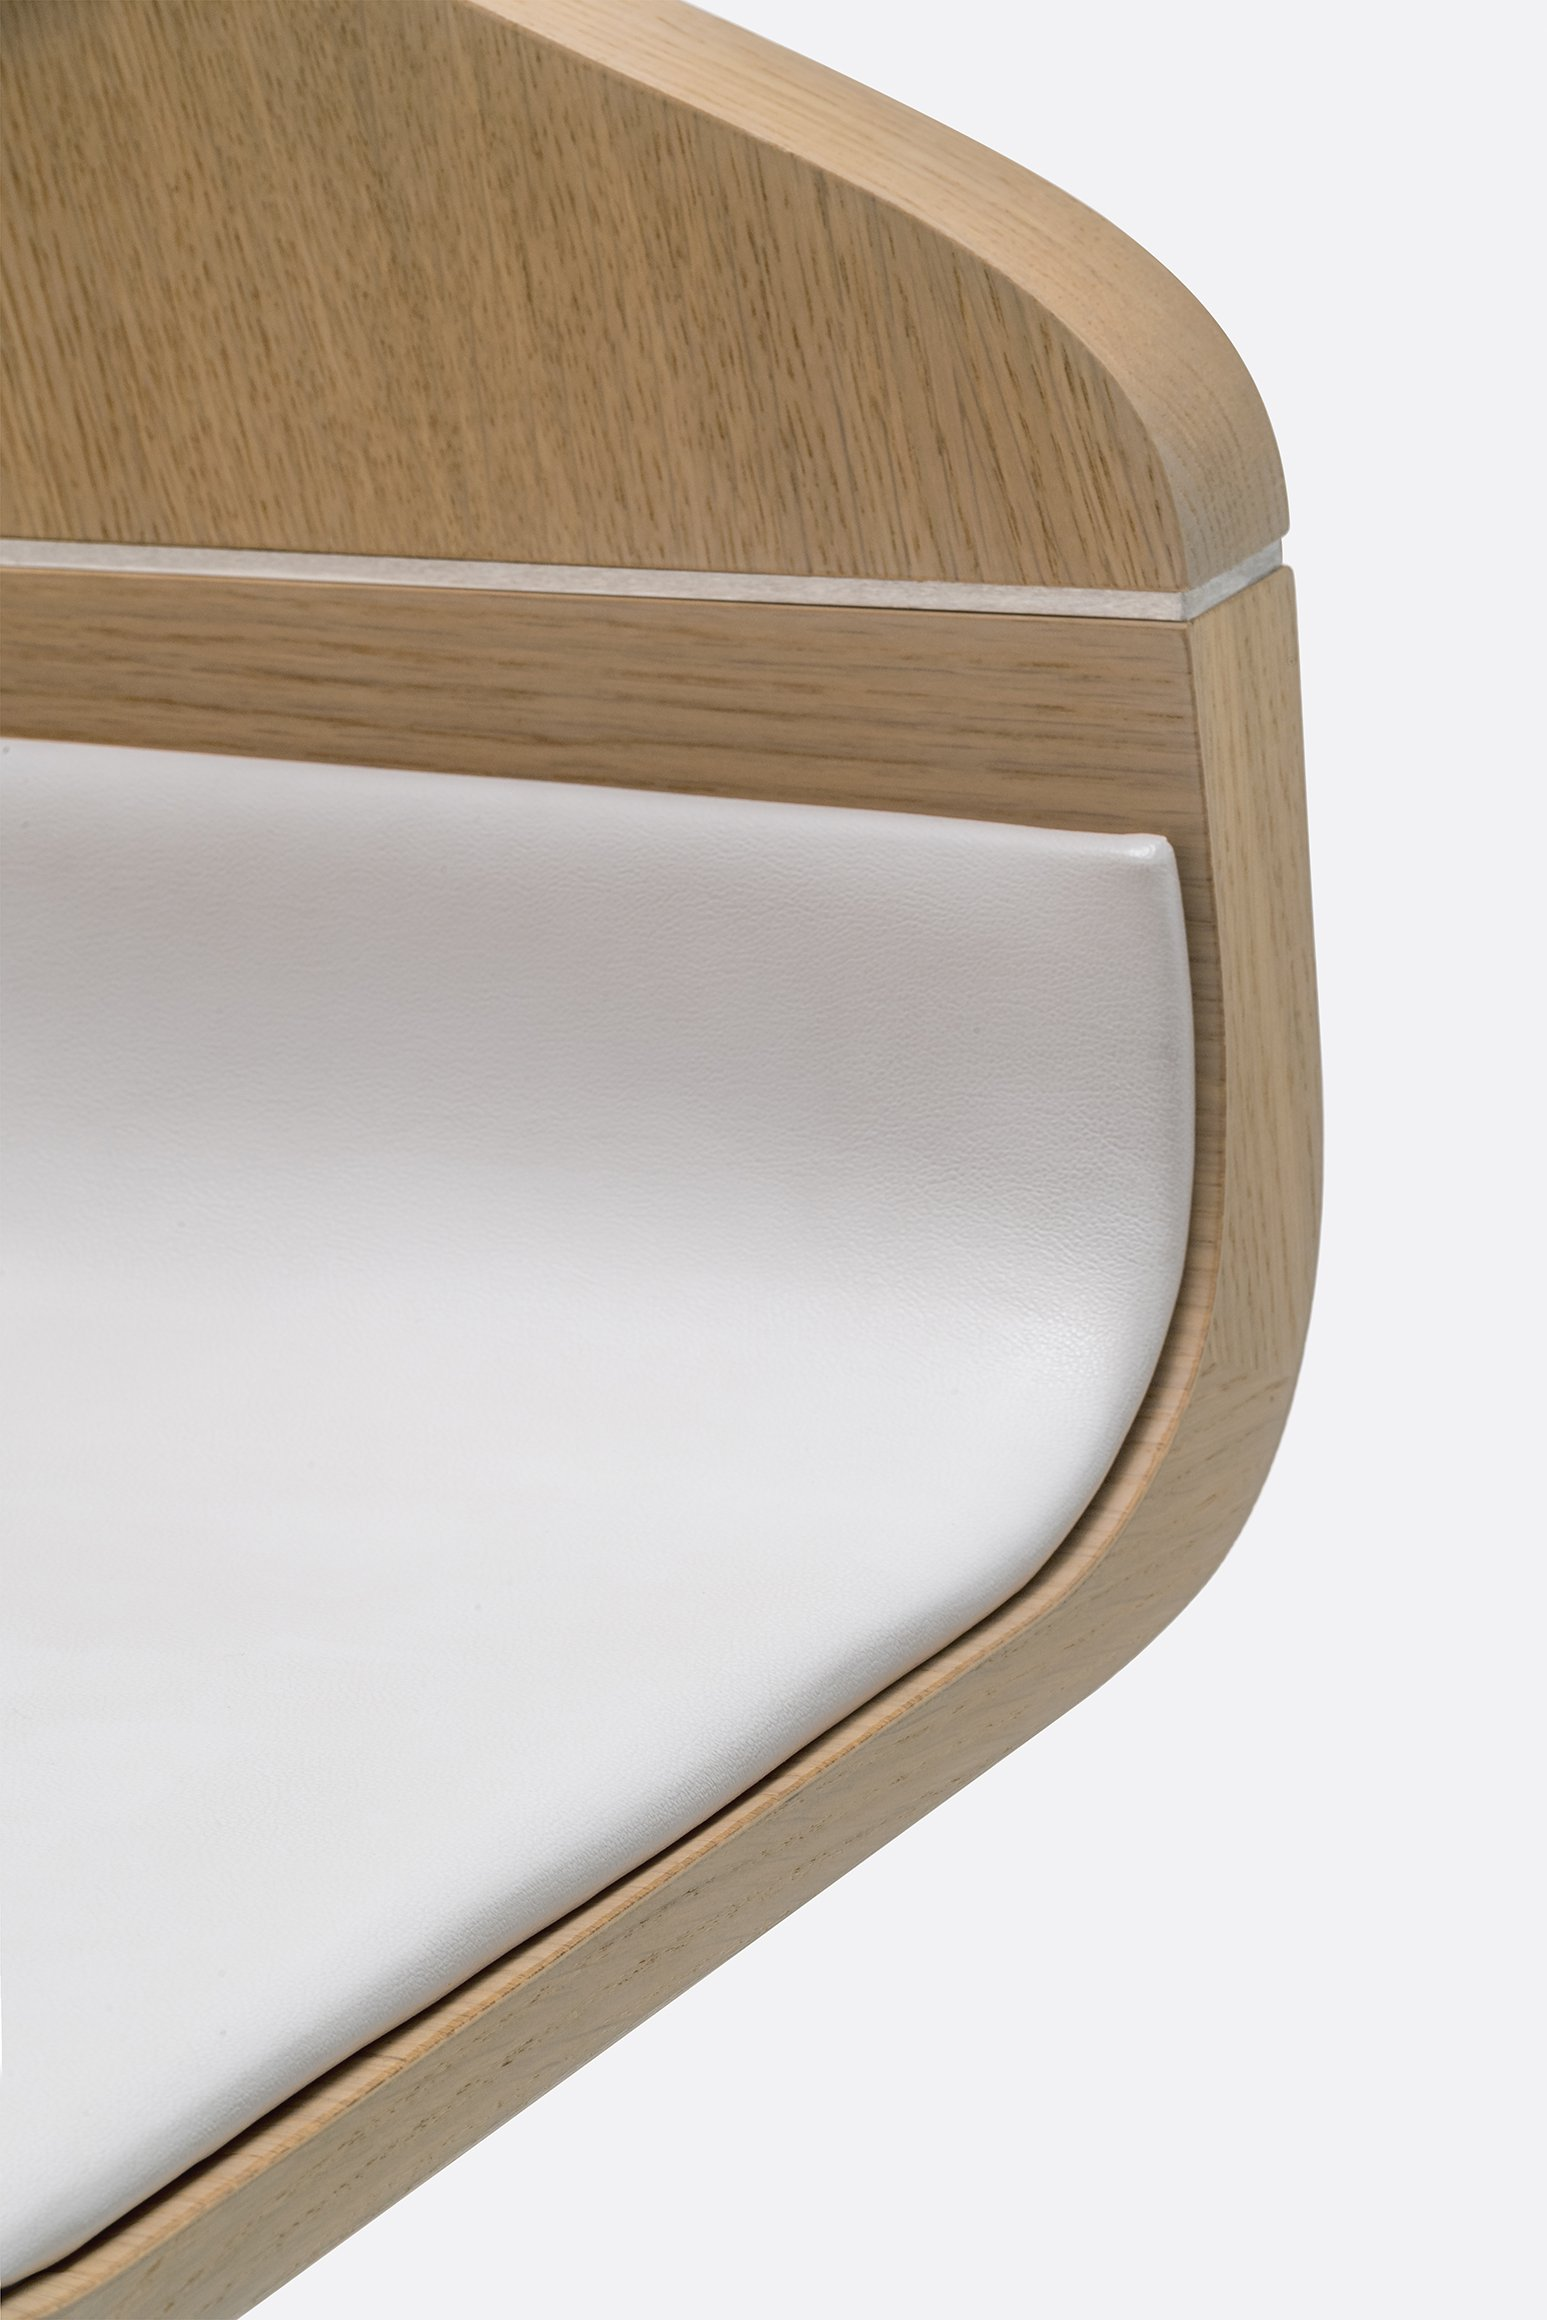 Apple 762 chair from Pedrali